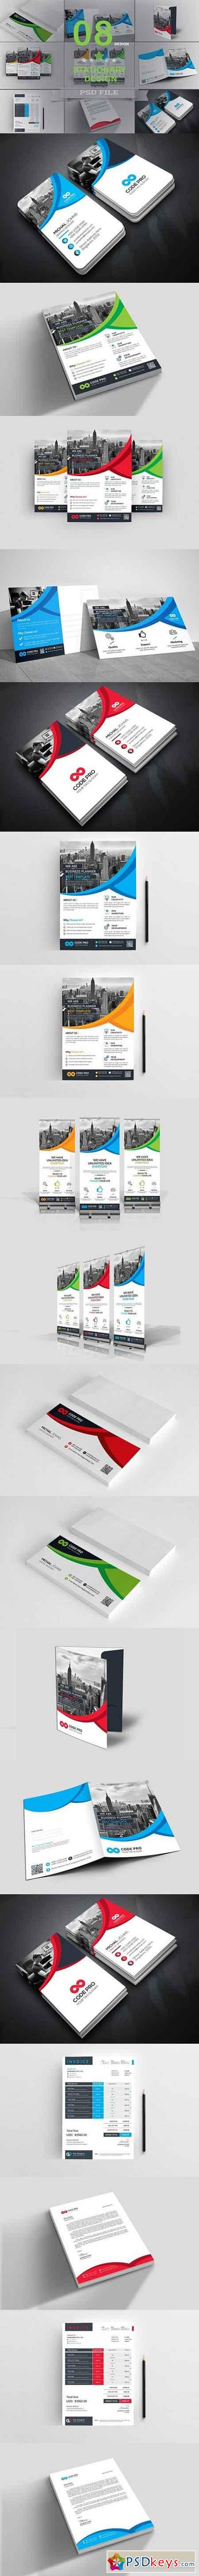 Business Stationary Design 1397652